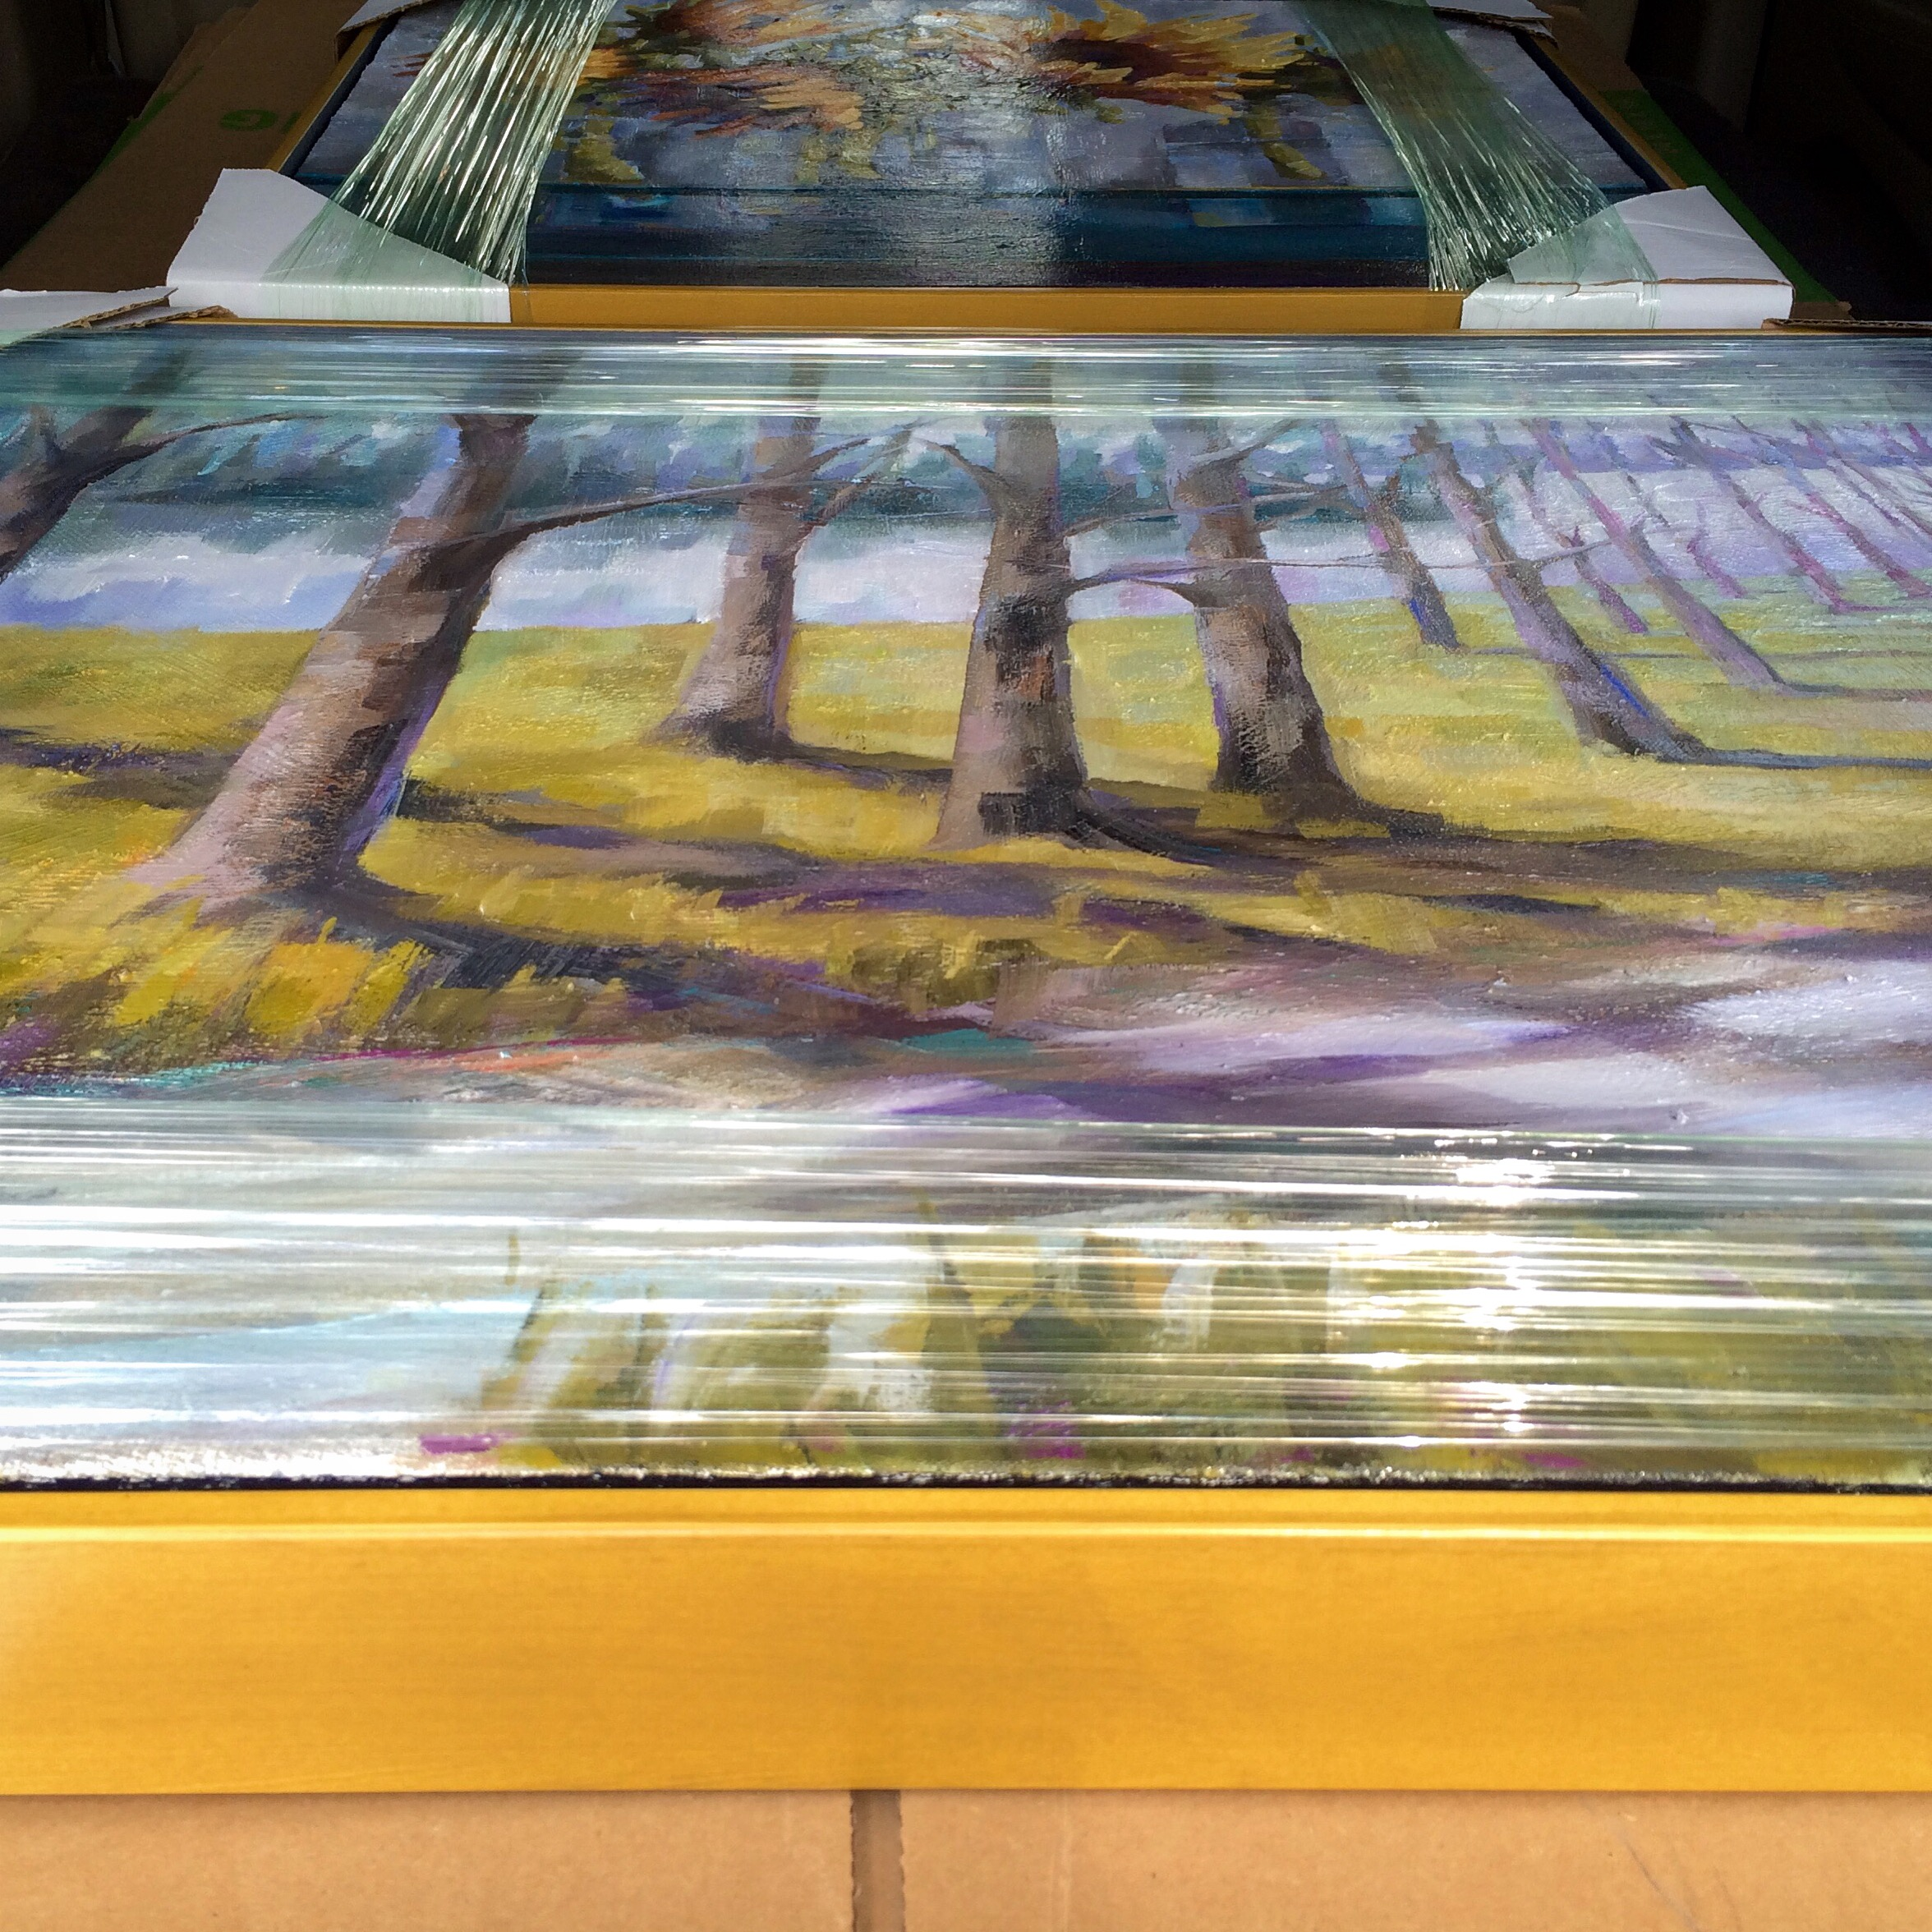 New artwork all packed up and headed to Shain Gallery! #kelleybrughfineart #shaingallery